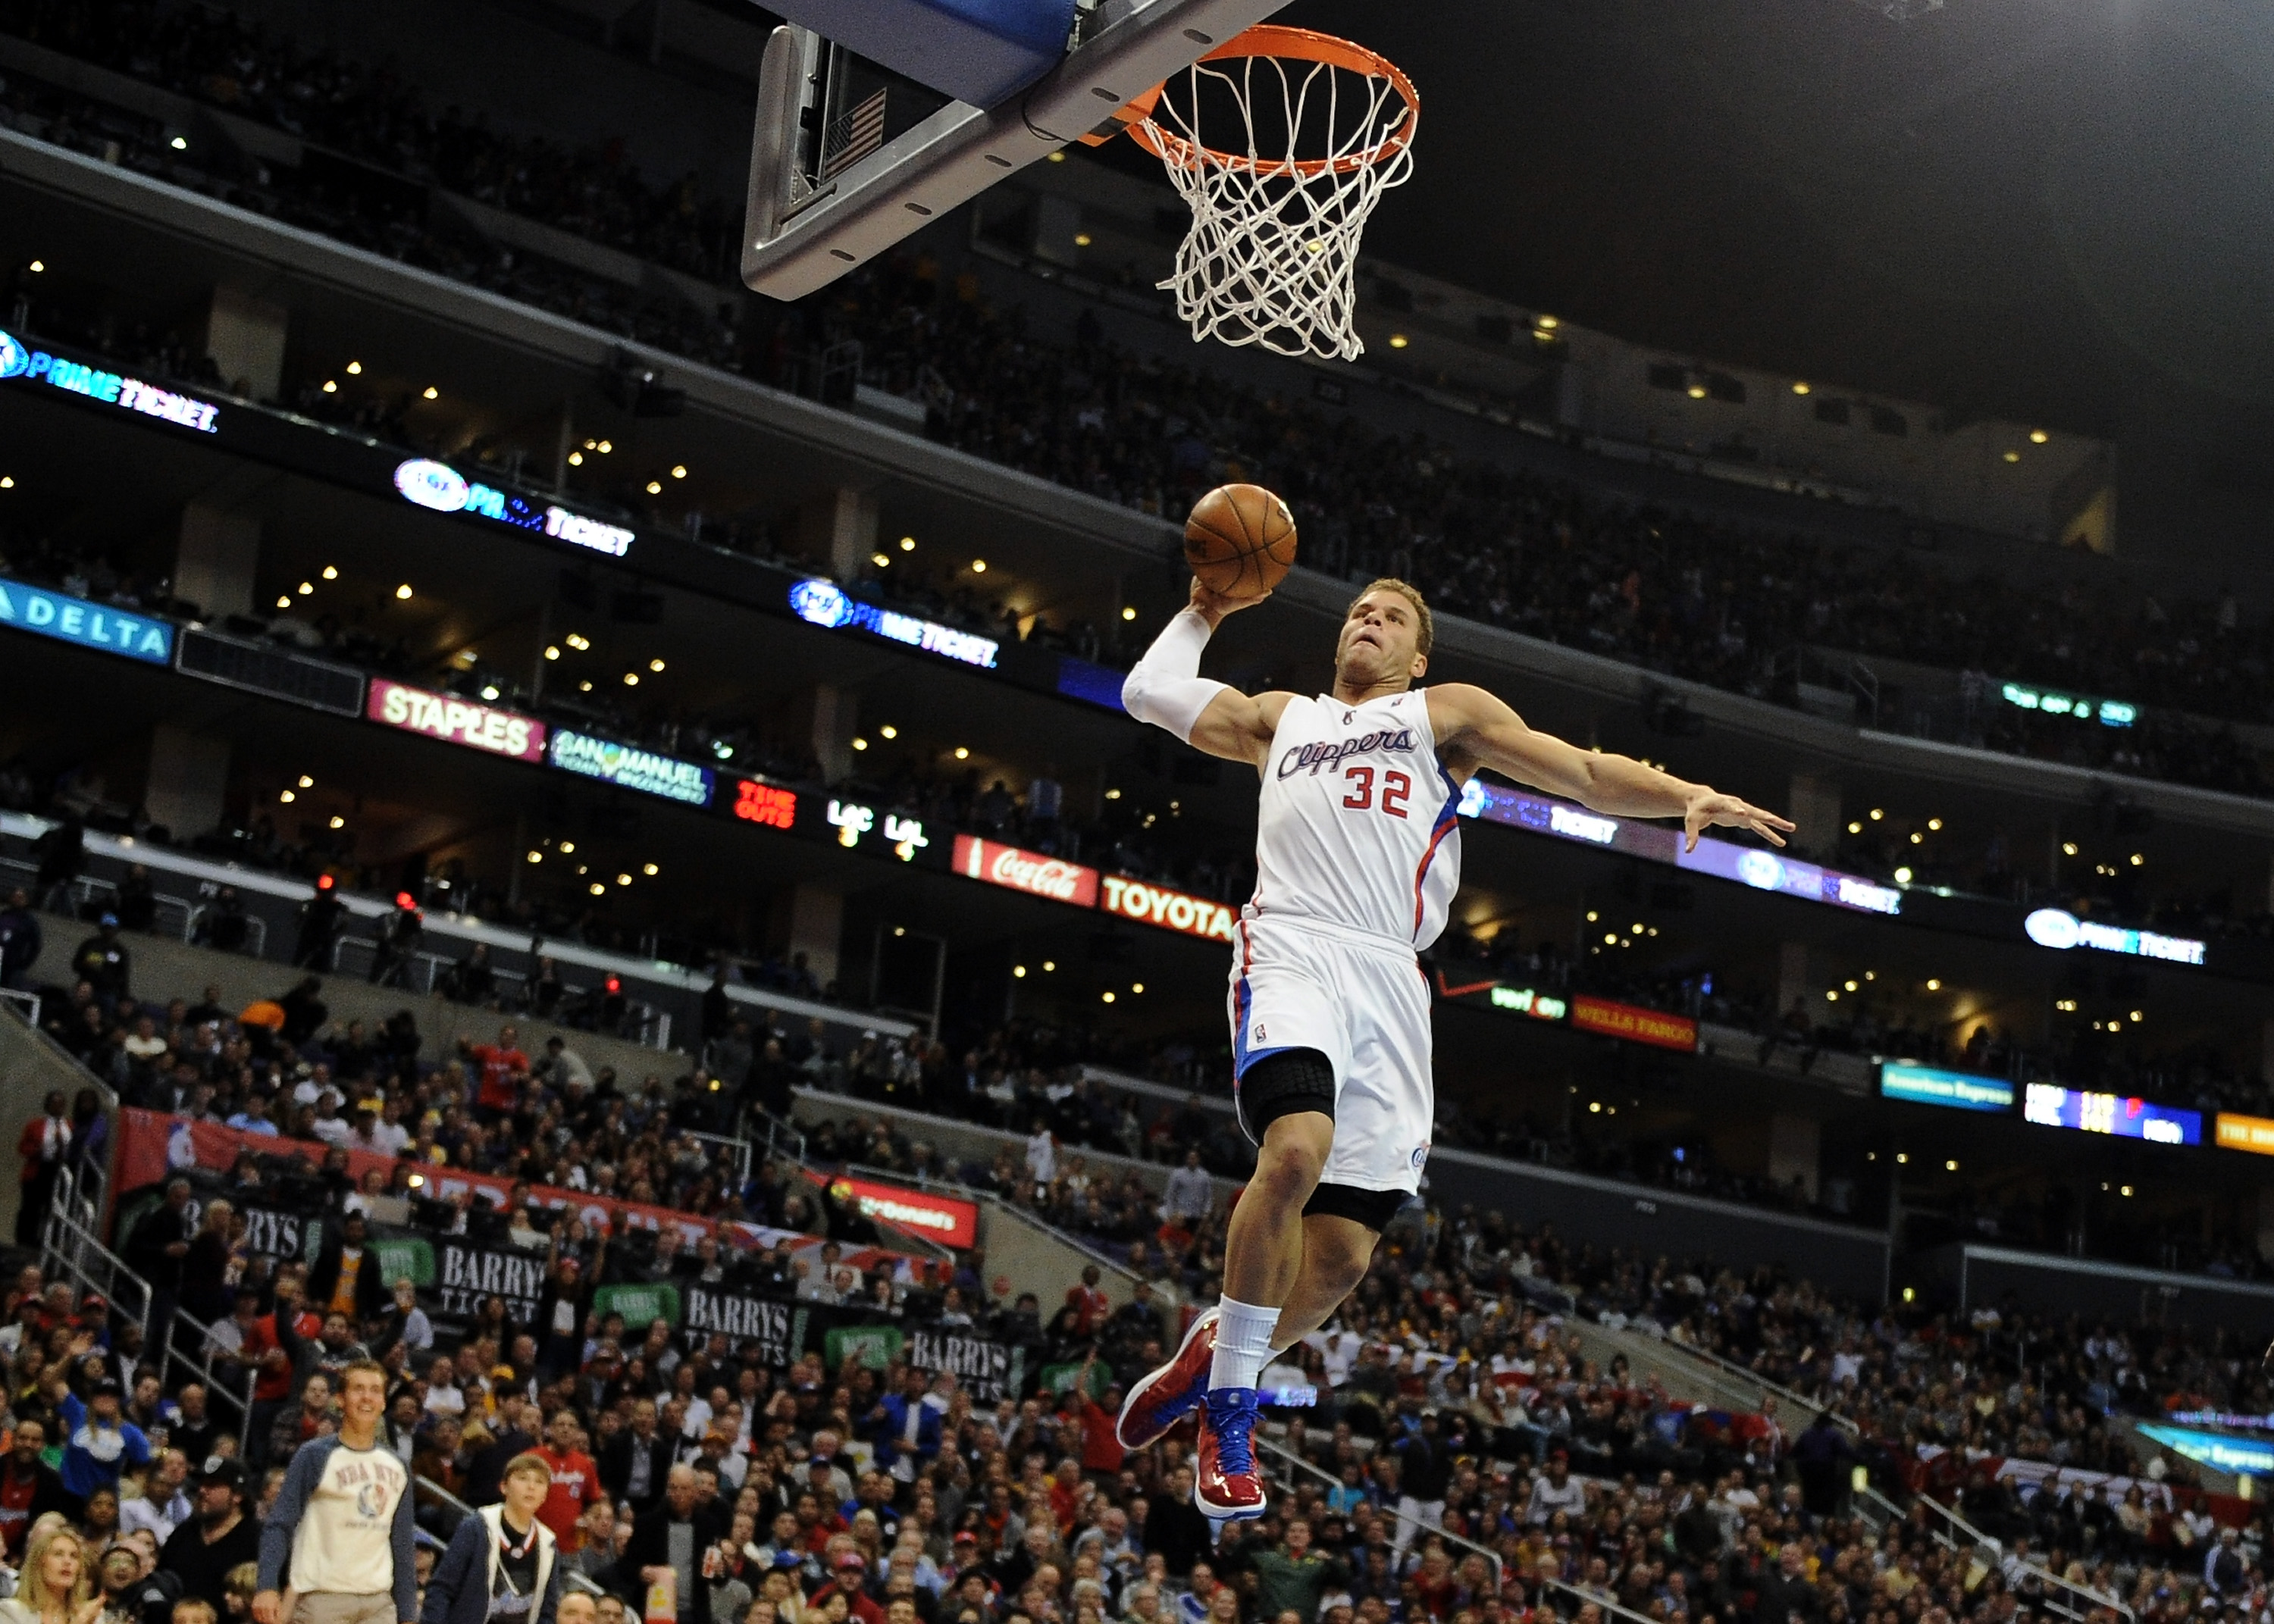 Blake Griffin has been known for his insane athleticism over the years. His talent has ultimately helped him rack up a massive net worth.